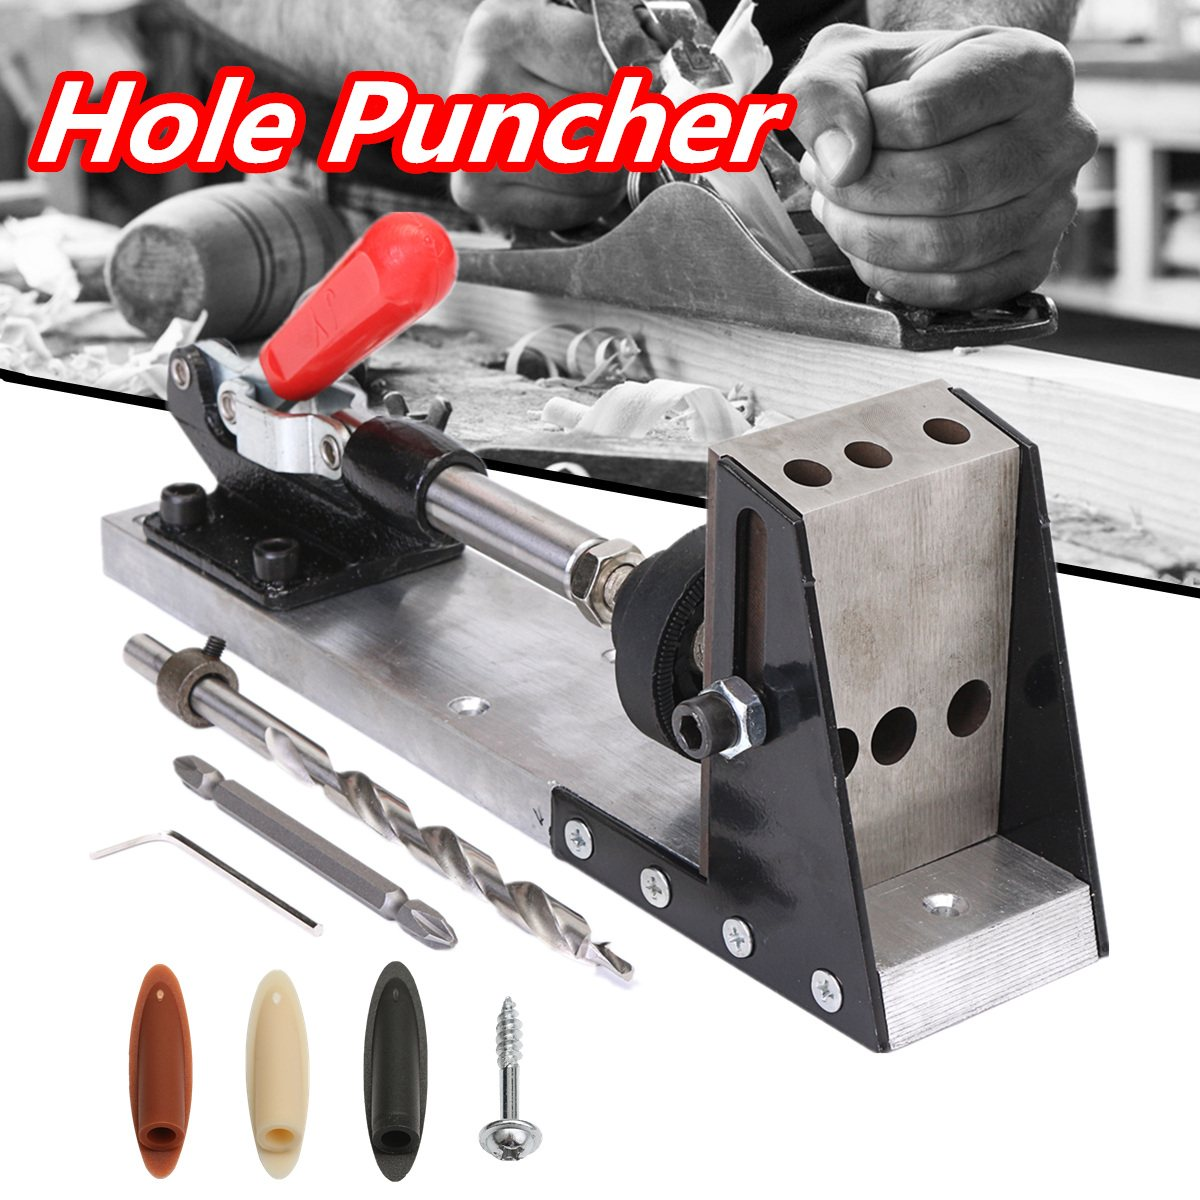 Woodworking Tool Pocket-Hole Puncher Jig Drill Guide Master Kit Carpenter Joinery System Woodworking Plug Cut Tool pocket hole jig woodwork guide repair carpenter kit woodworking tool